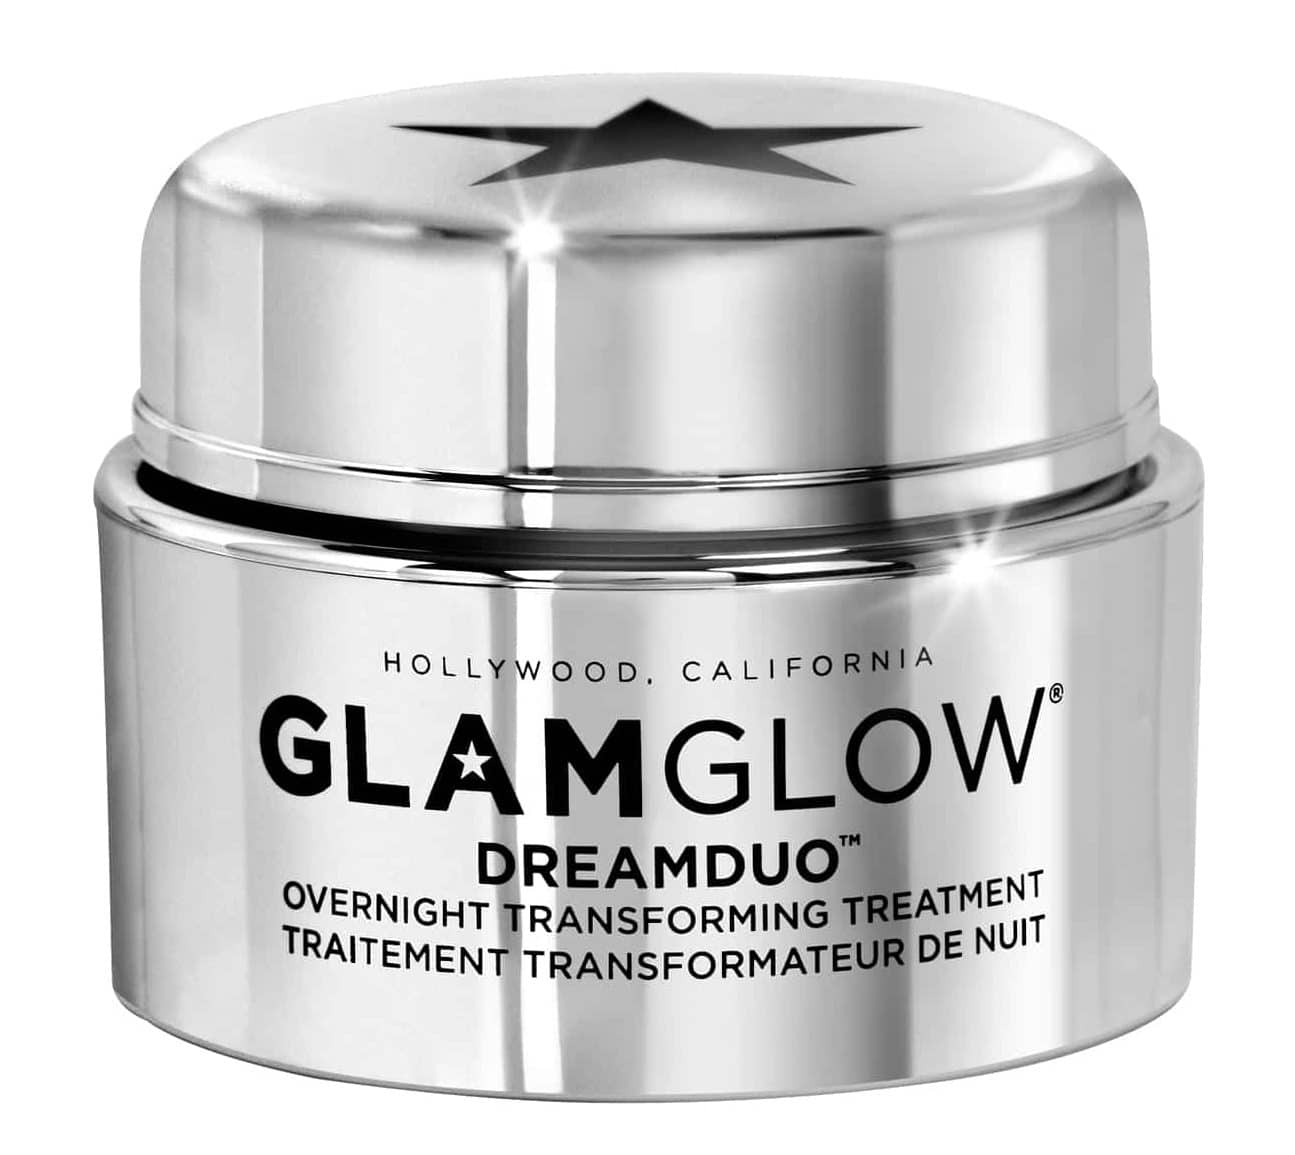 About Beauty GlamGlow DreamDuo